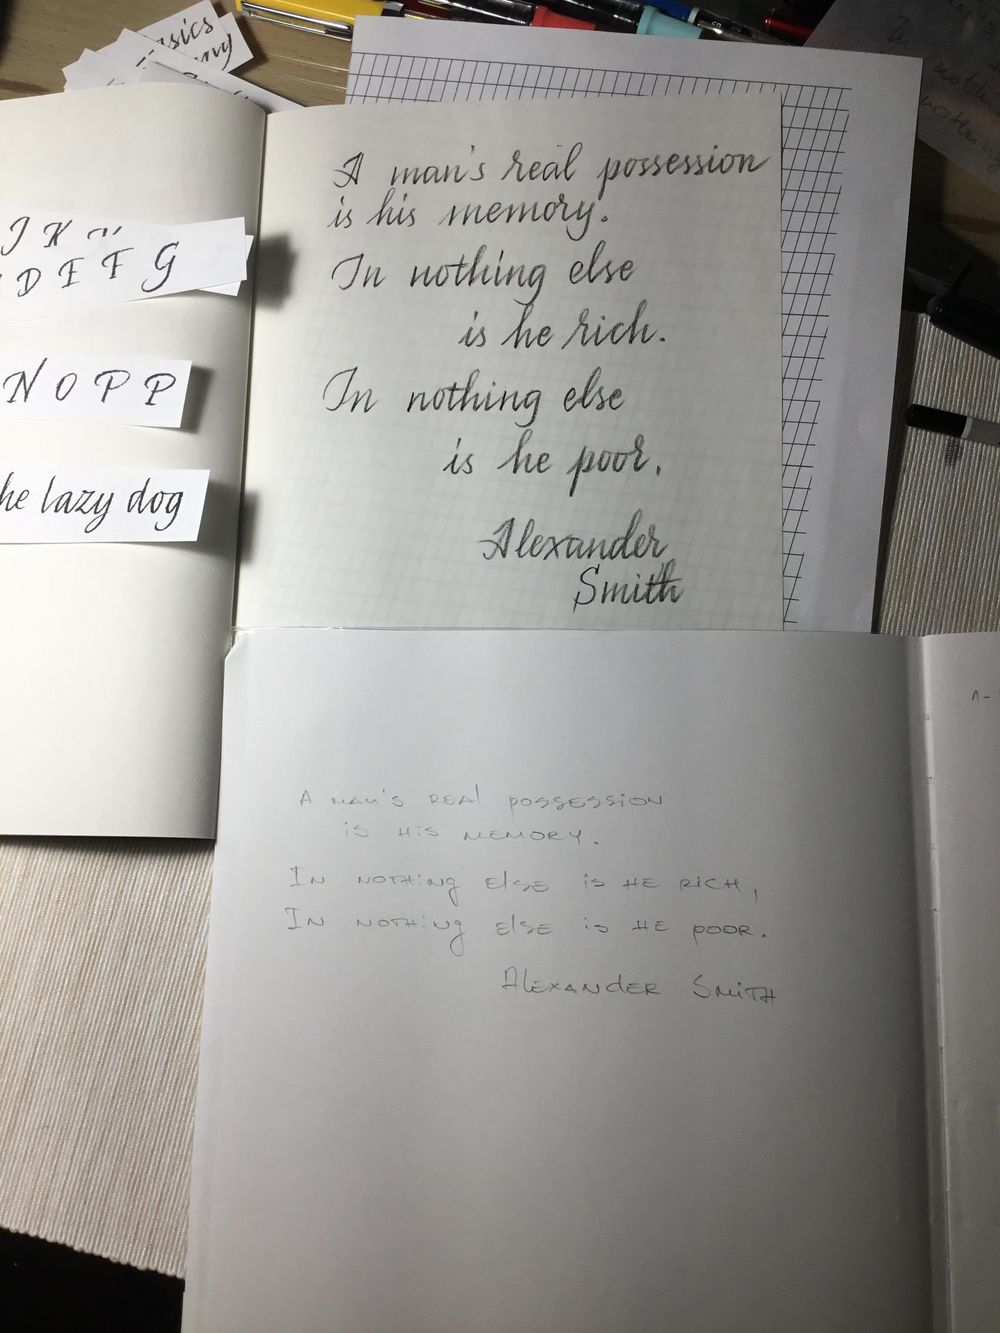 I love my new handwriting - image 1 - student project